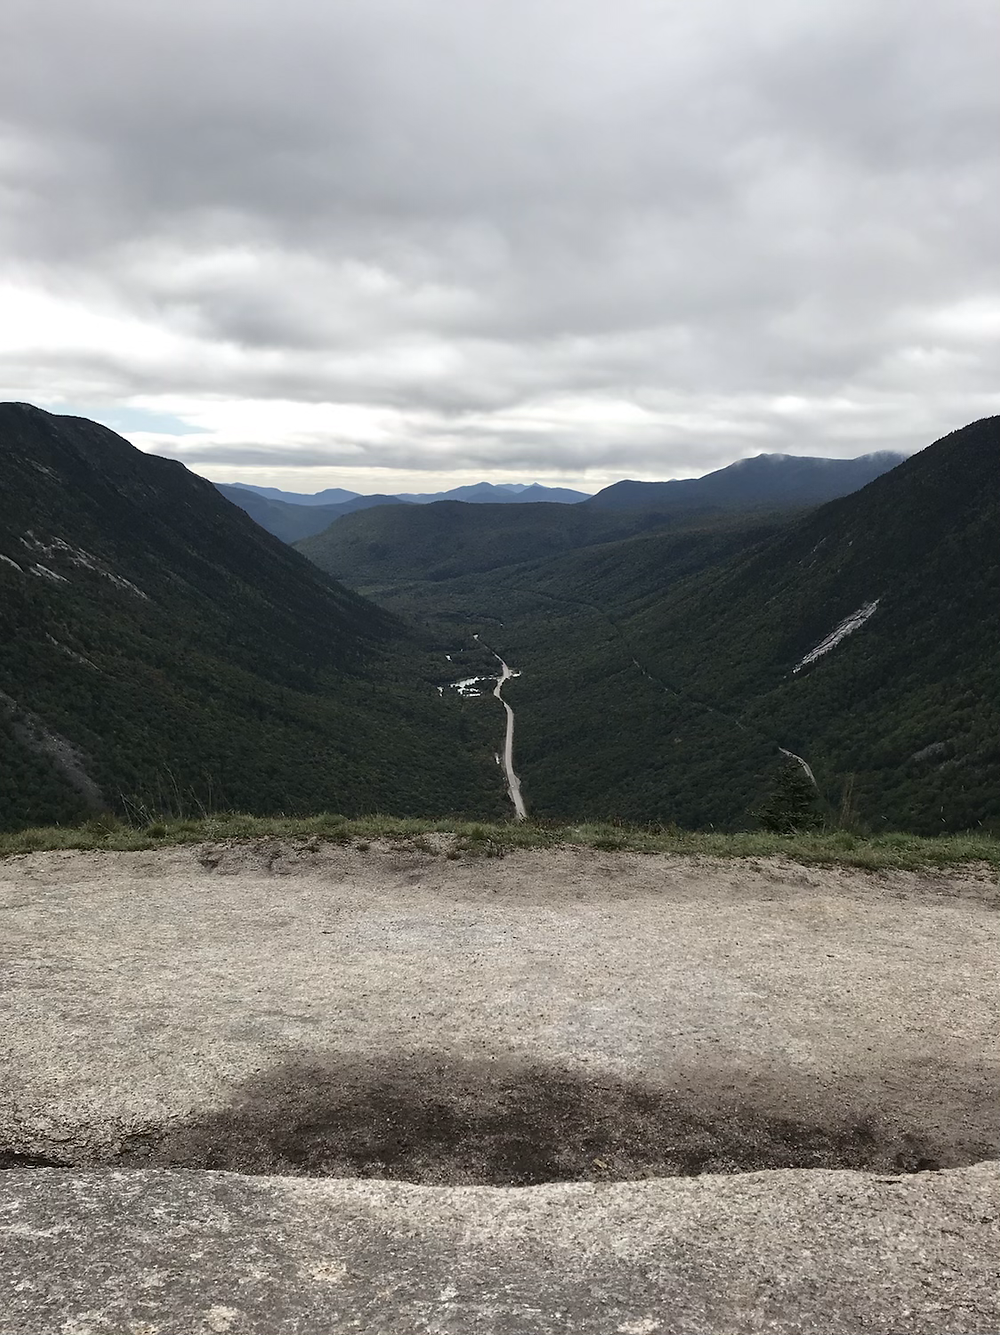 View from the top of Mt. Willard